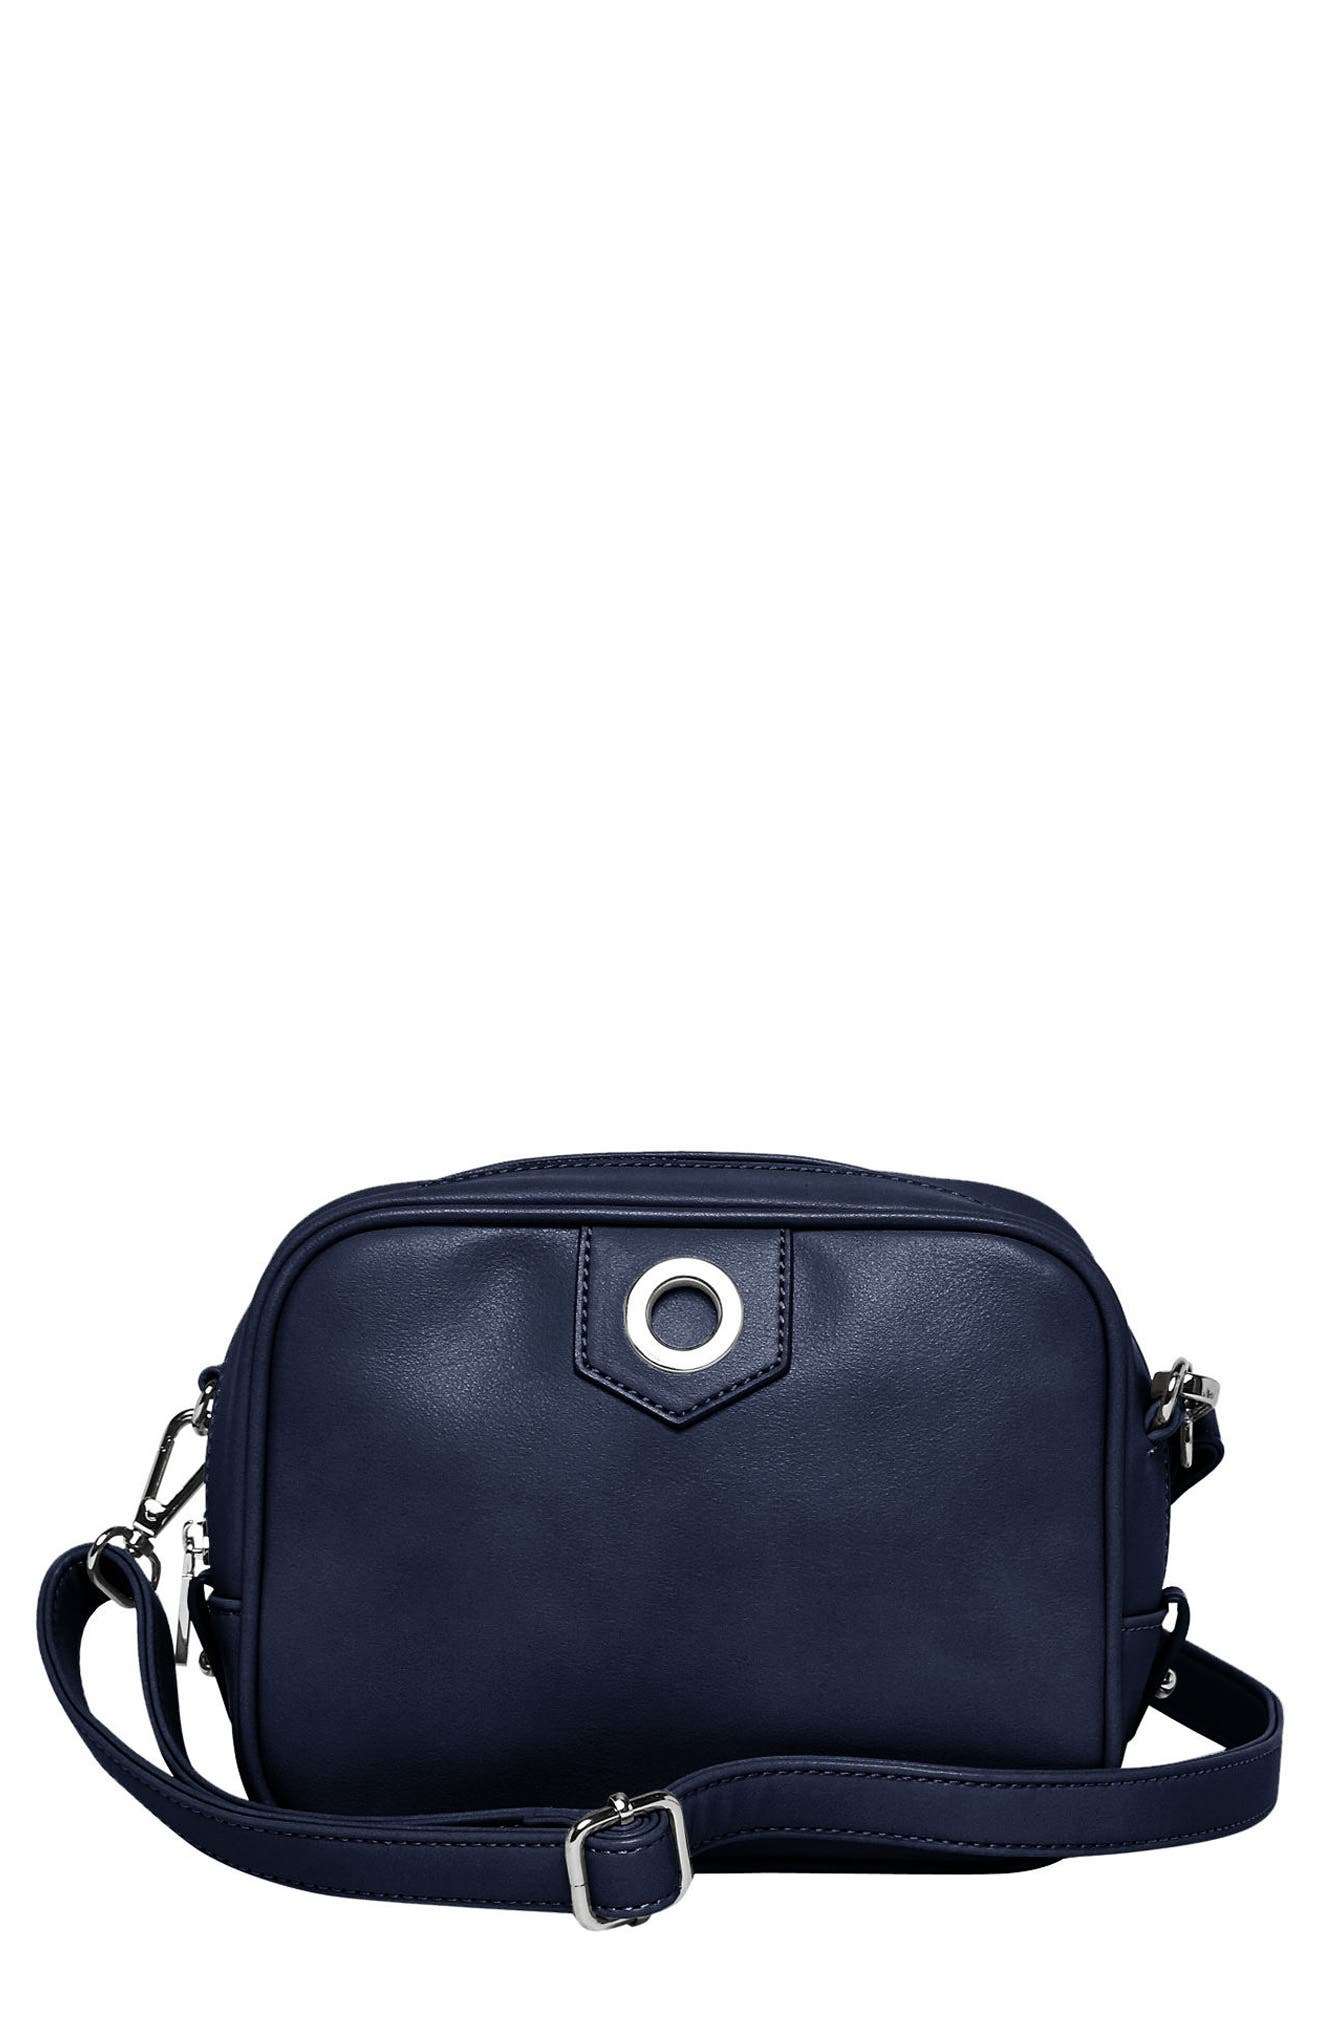 Dakota Vegan Leather Crossbody Bag,                             Main thumbnail 2, color,